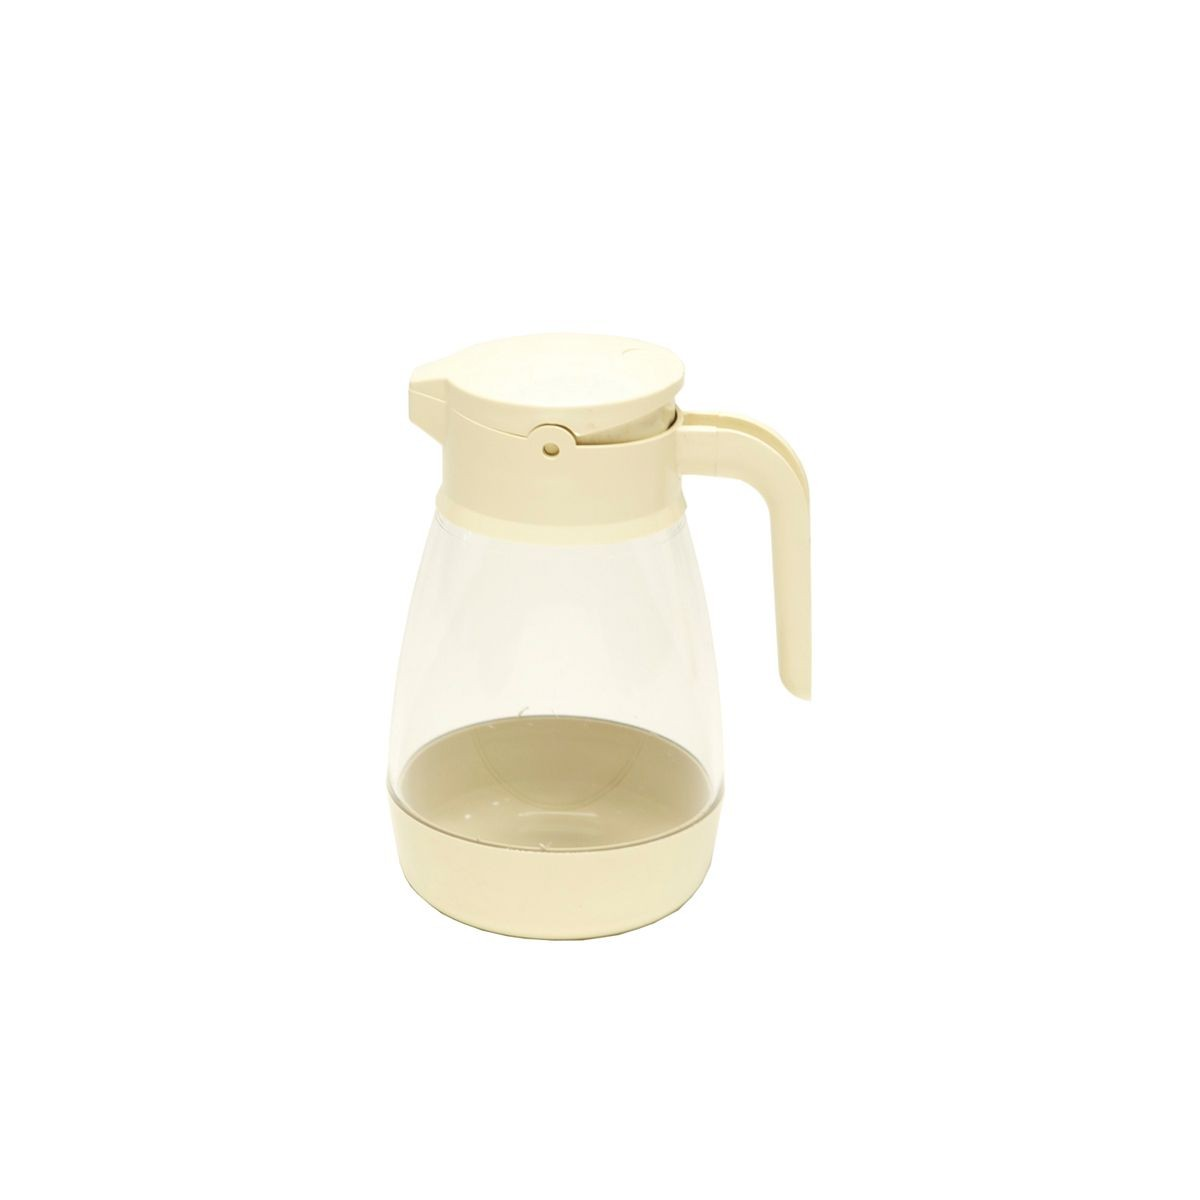 Service Ideas SY916AL Almond Dripless Syrup Dispenser with Locking Lid, 16 oz.